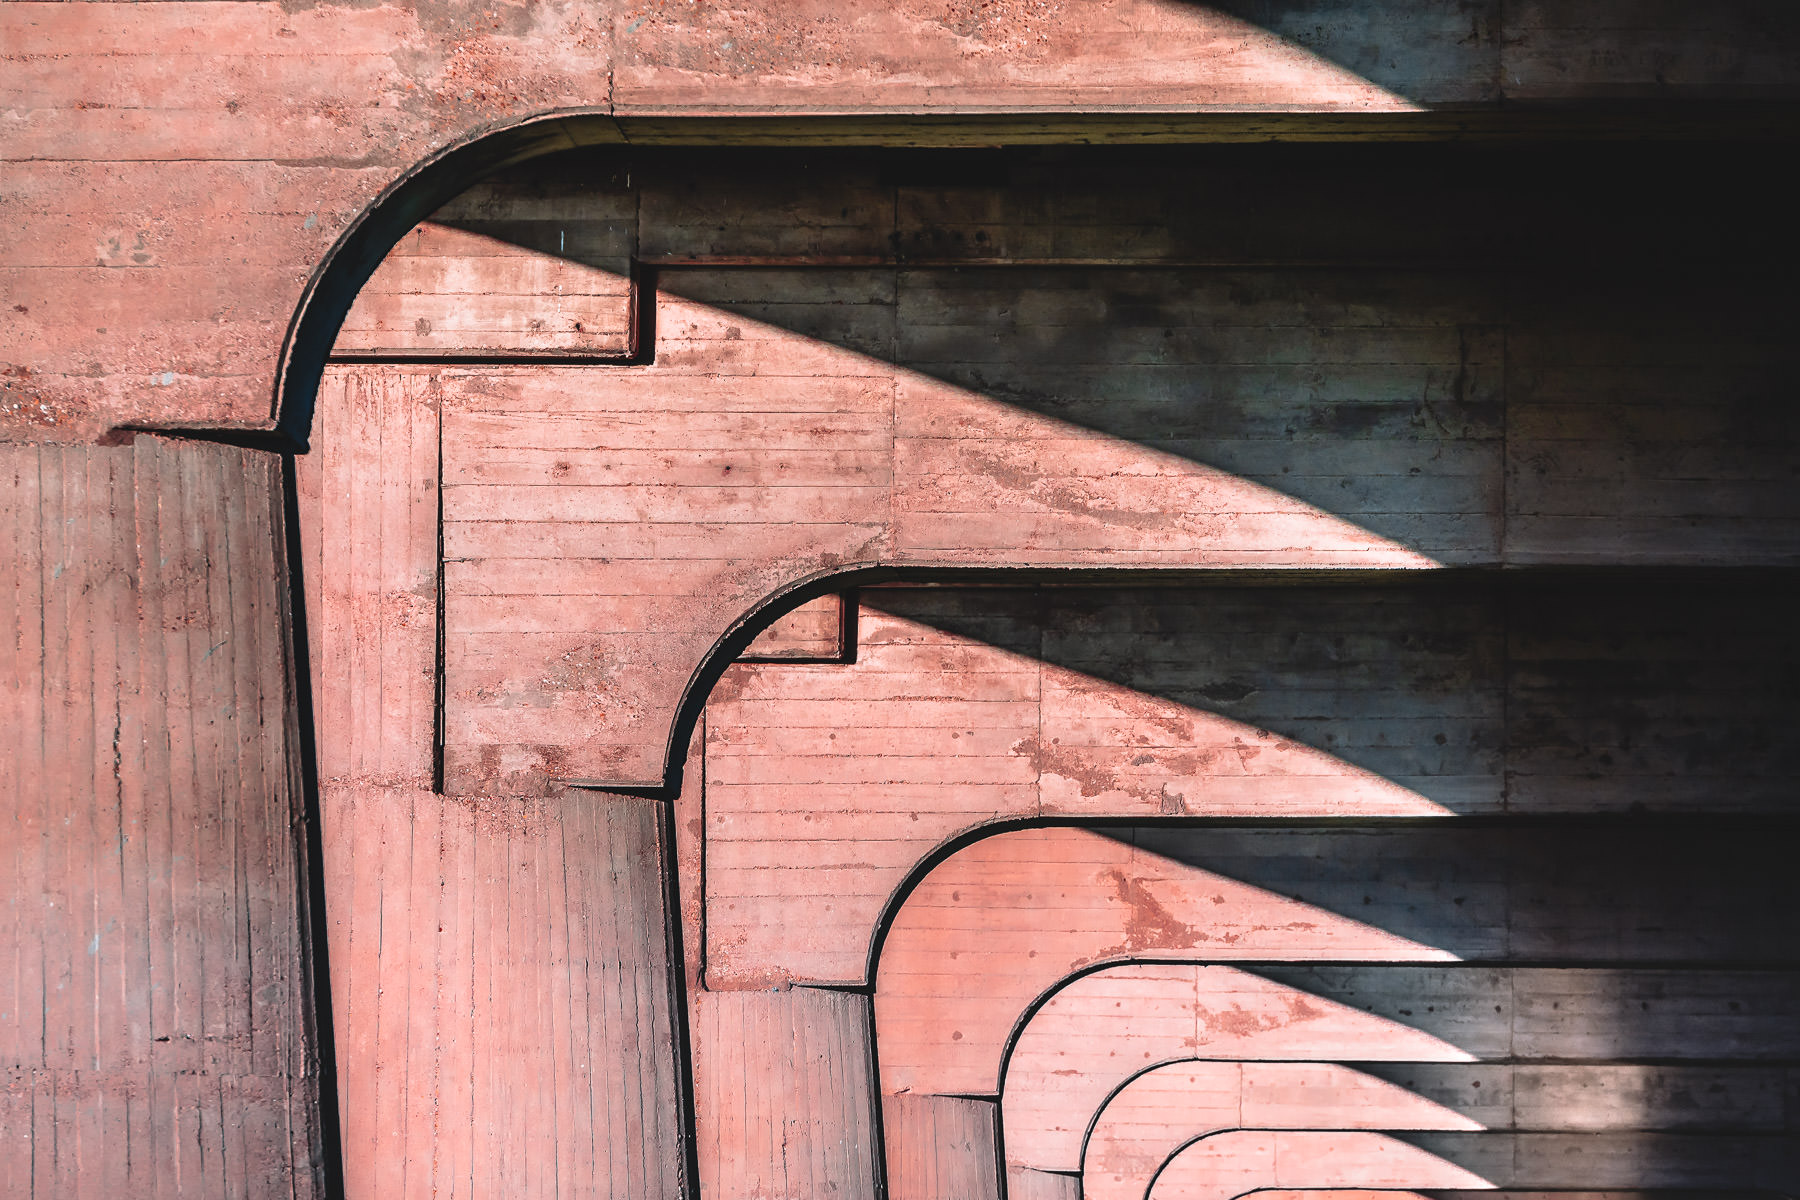 An abstract view of the supports for Dallas' Continental Avenue Bridge.